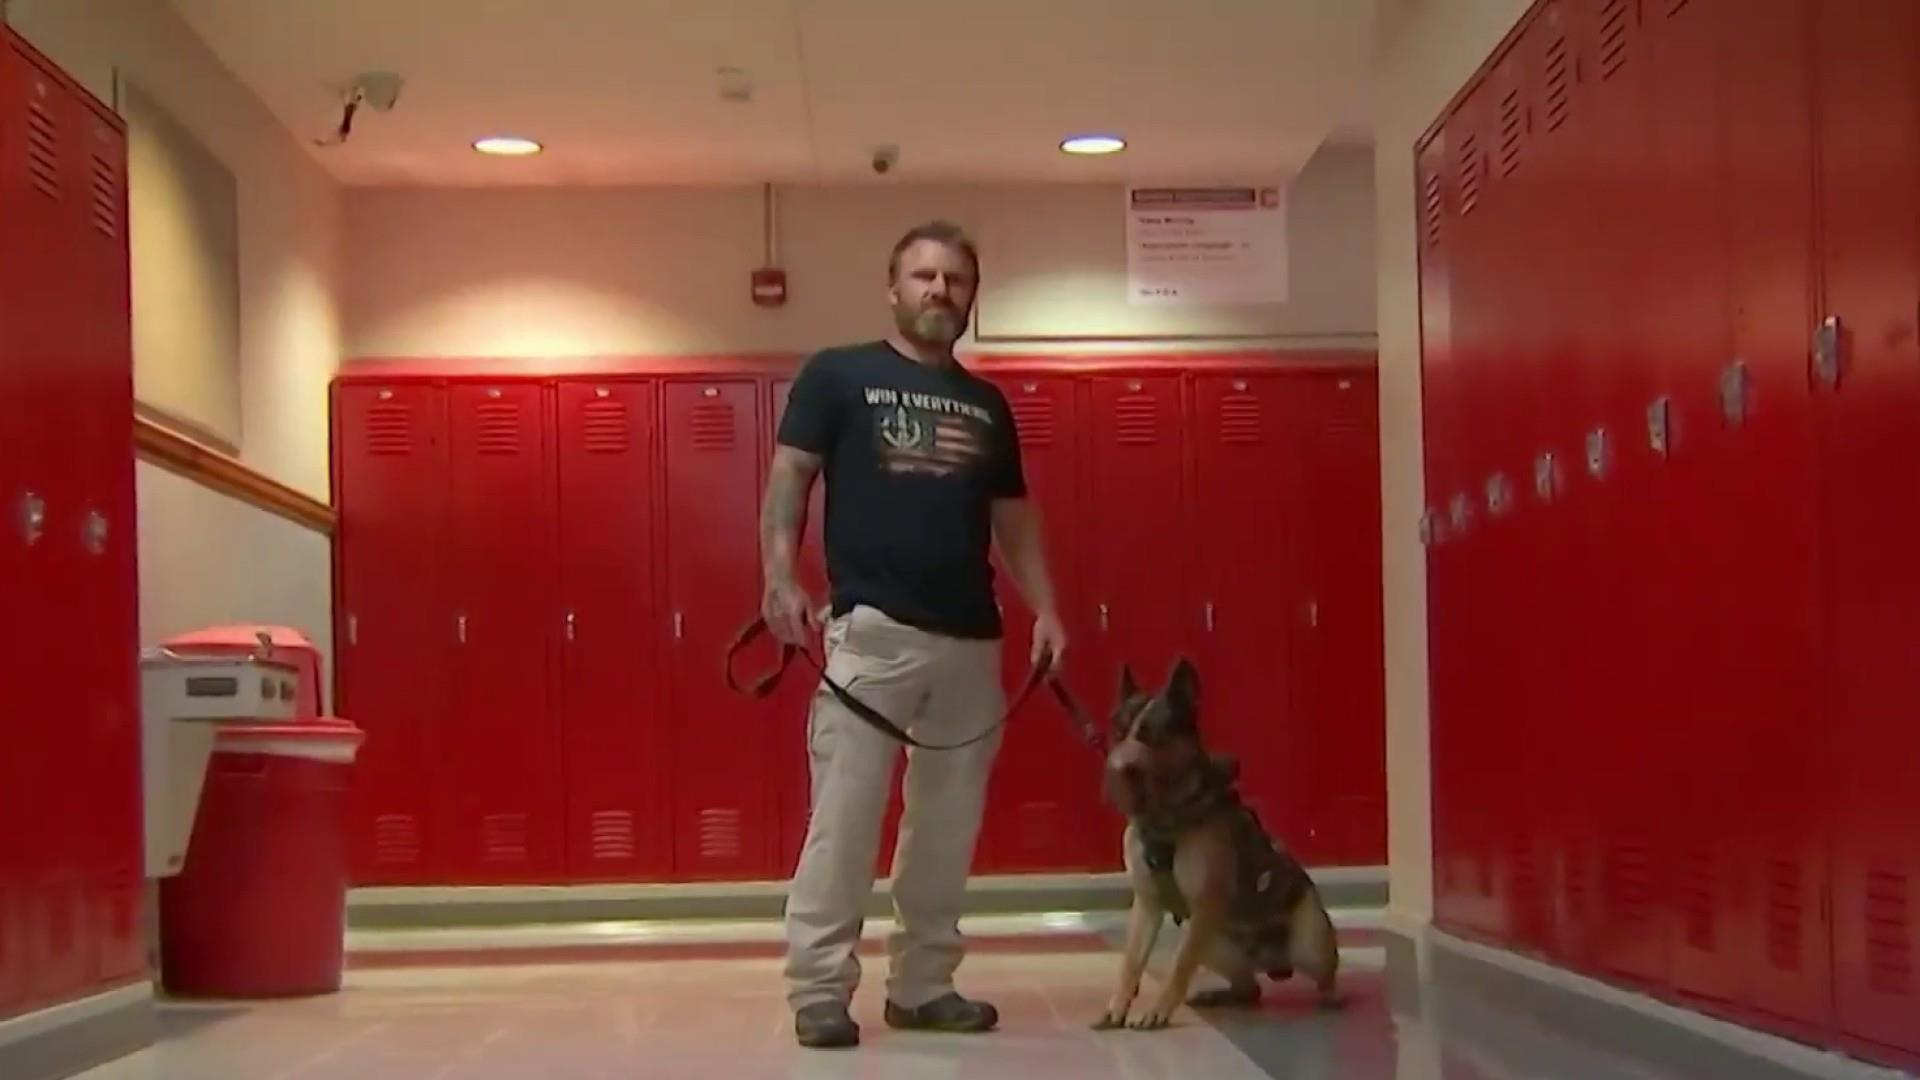 Former Navy SEAL training dogs to combat school shootings